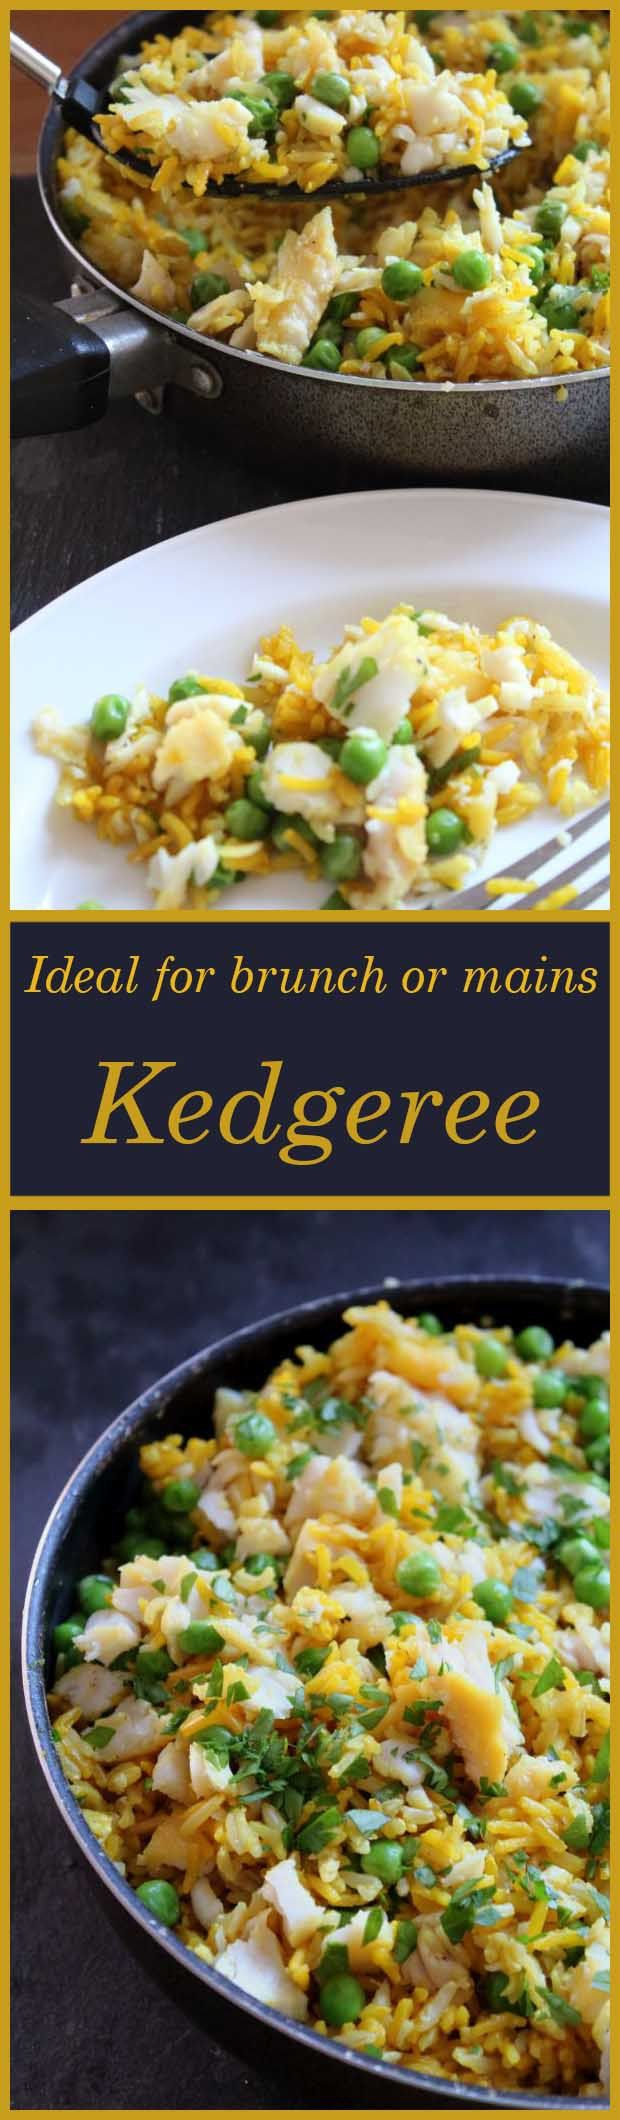 The classic Kedgeree recipe, low cost, low calorie and low fat version. Perfect for brunch or for mains.